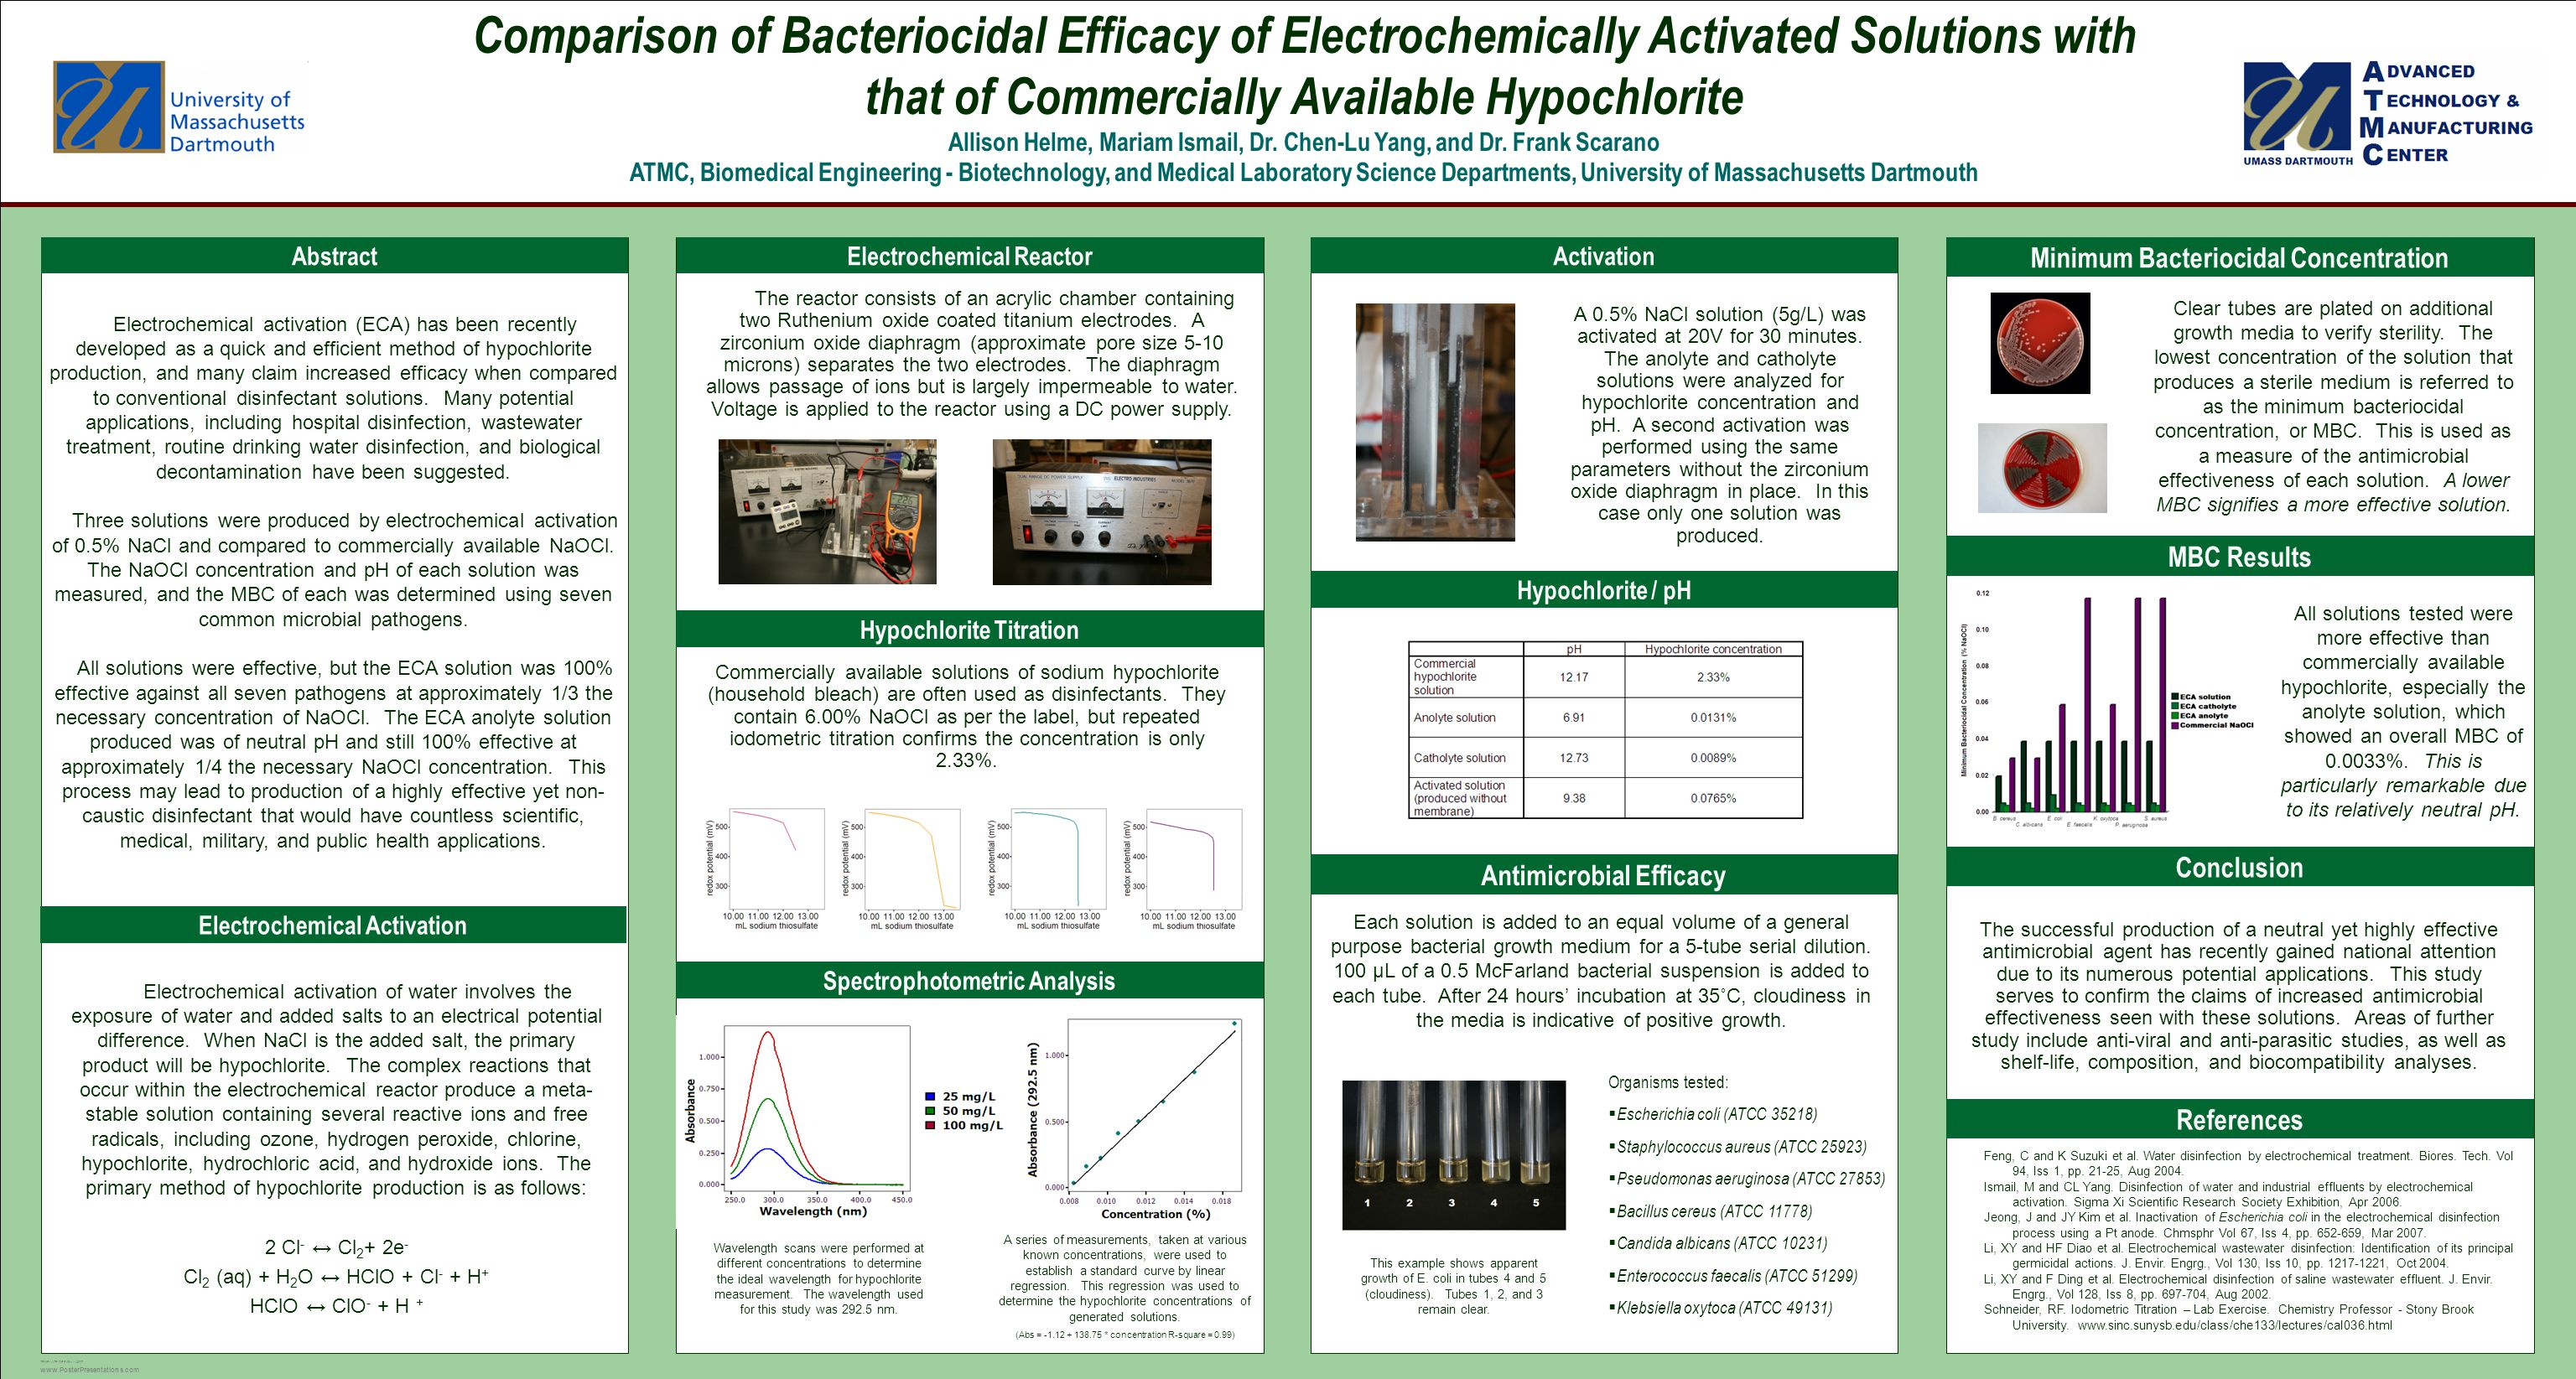 TEMPLATE DESIGN © 2007 www.PosterPresentations.com Electrochemical activation (ECA) has been recently developed as a quick and efficient method of hypochlorite production, and many claim increased efficacy when compared to conventional disinfectant solutions.